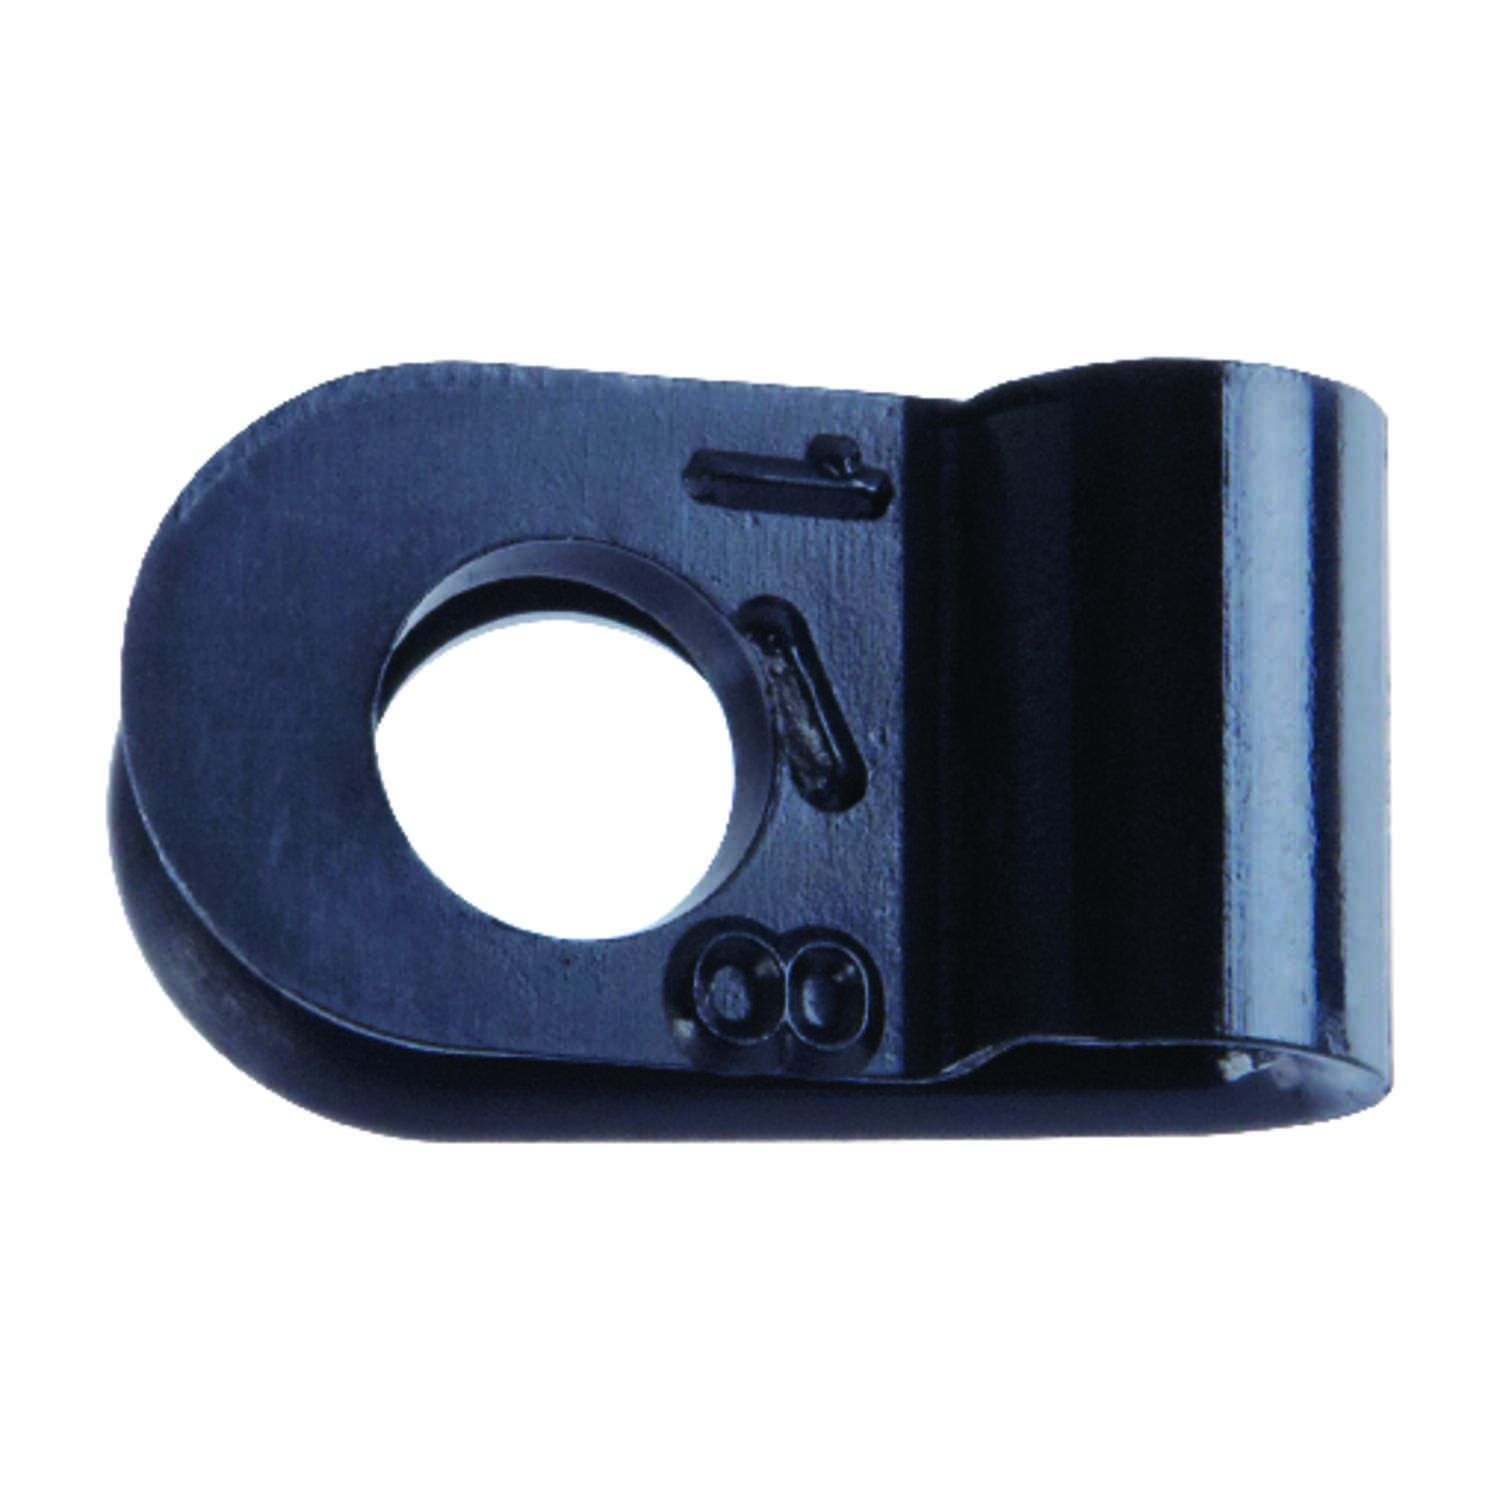 Jandorf  1/8 in. Dia. Cable Clamp  5 pk Nylon